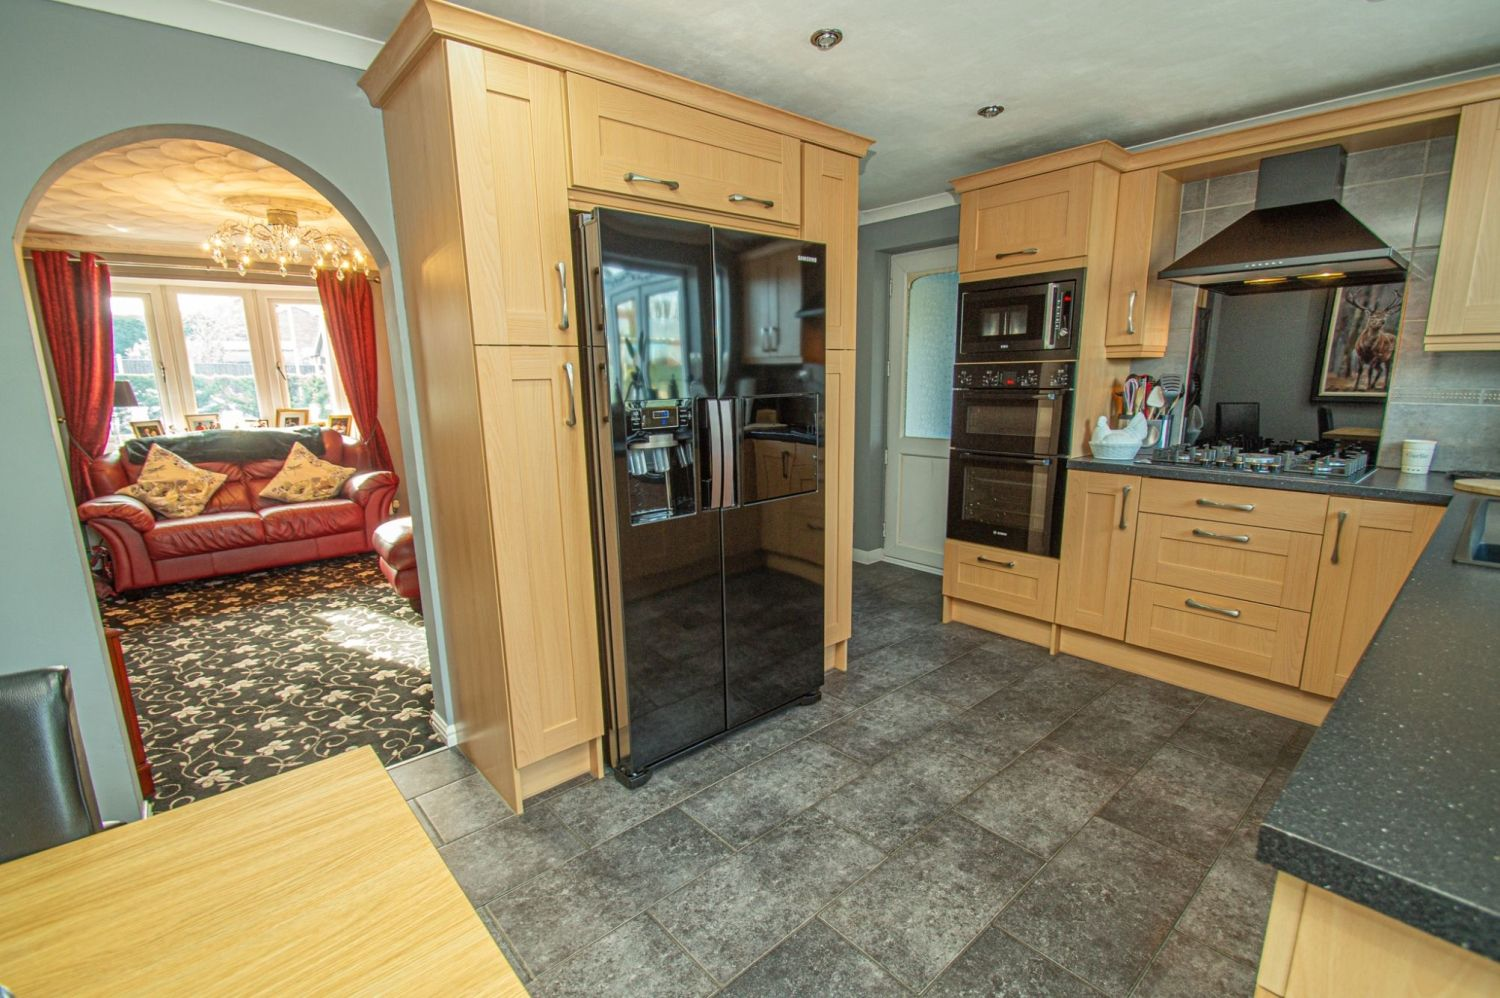 3 bed detached for sale in Broomehill Close, Brierley Hill  - Property Image 5